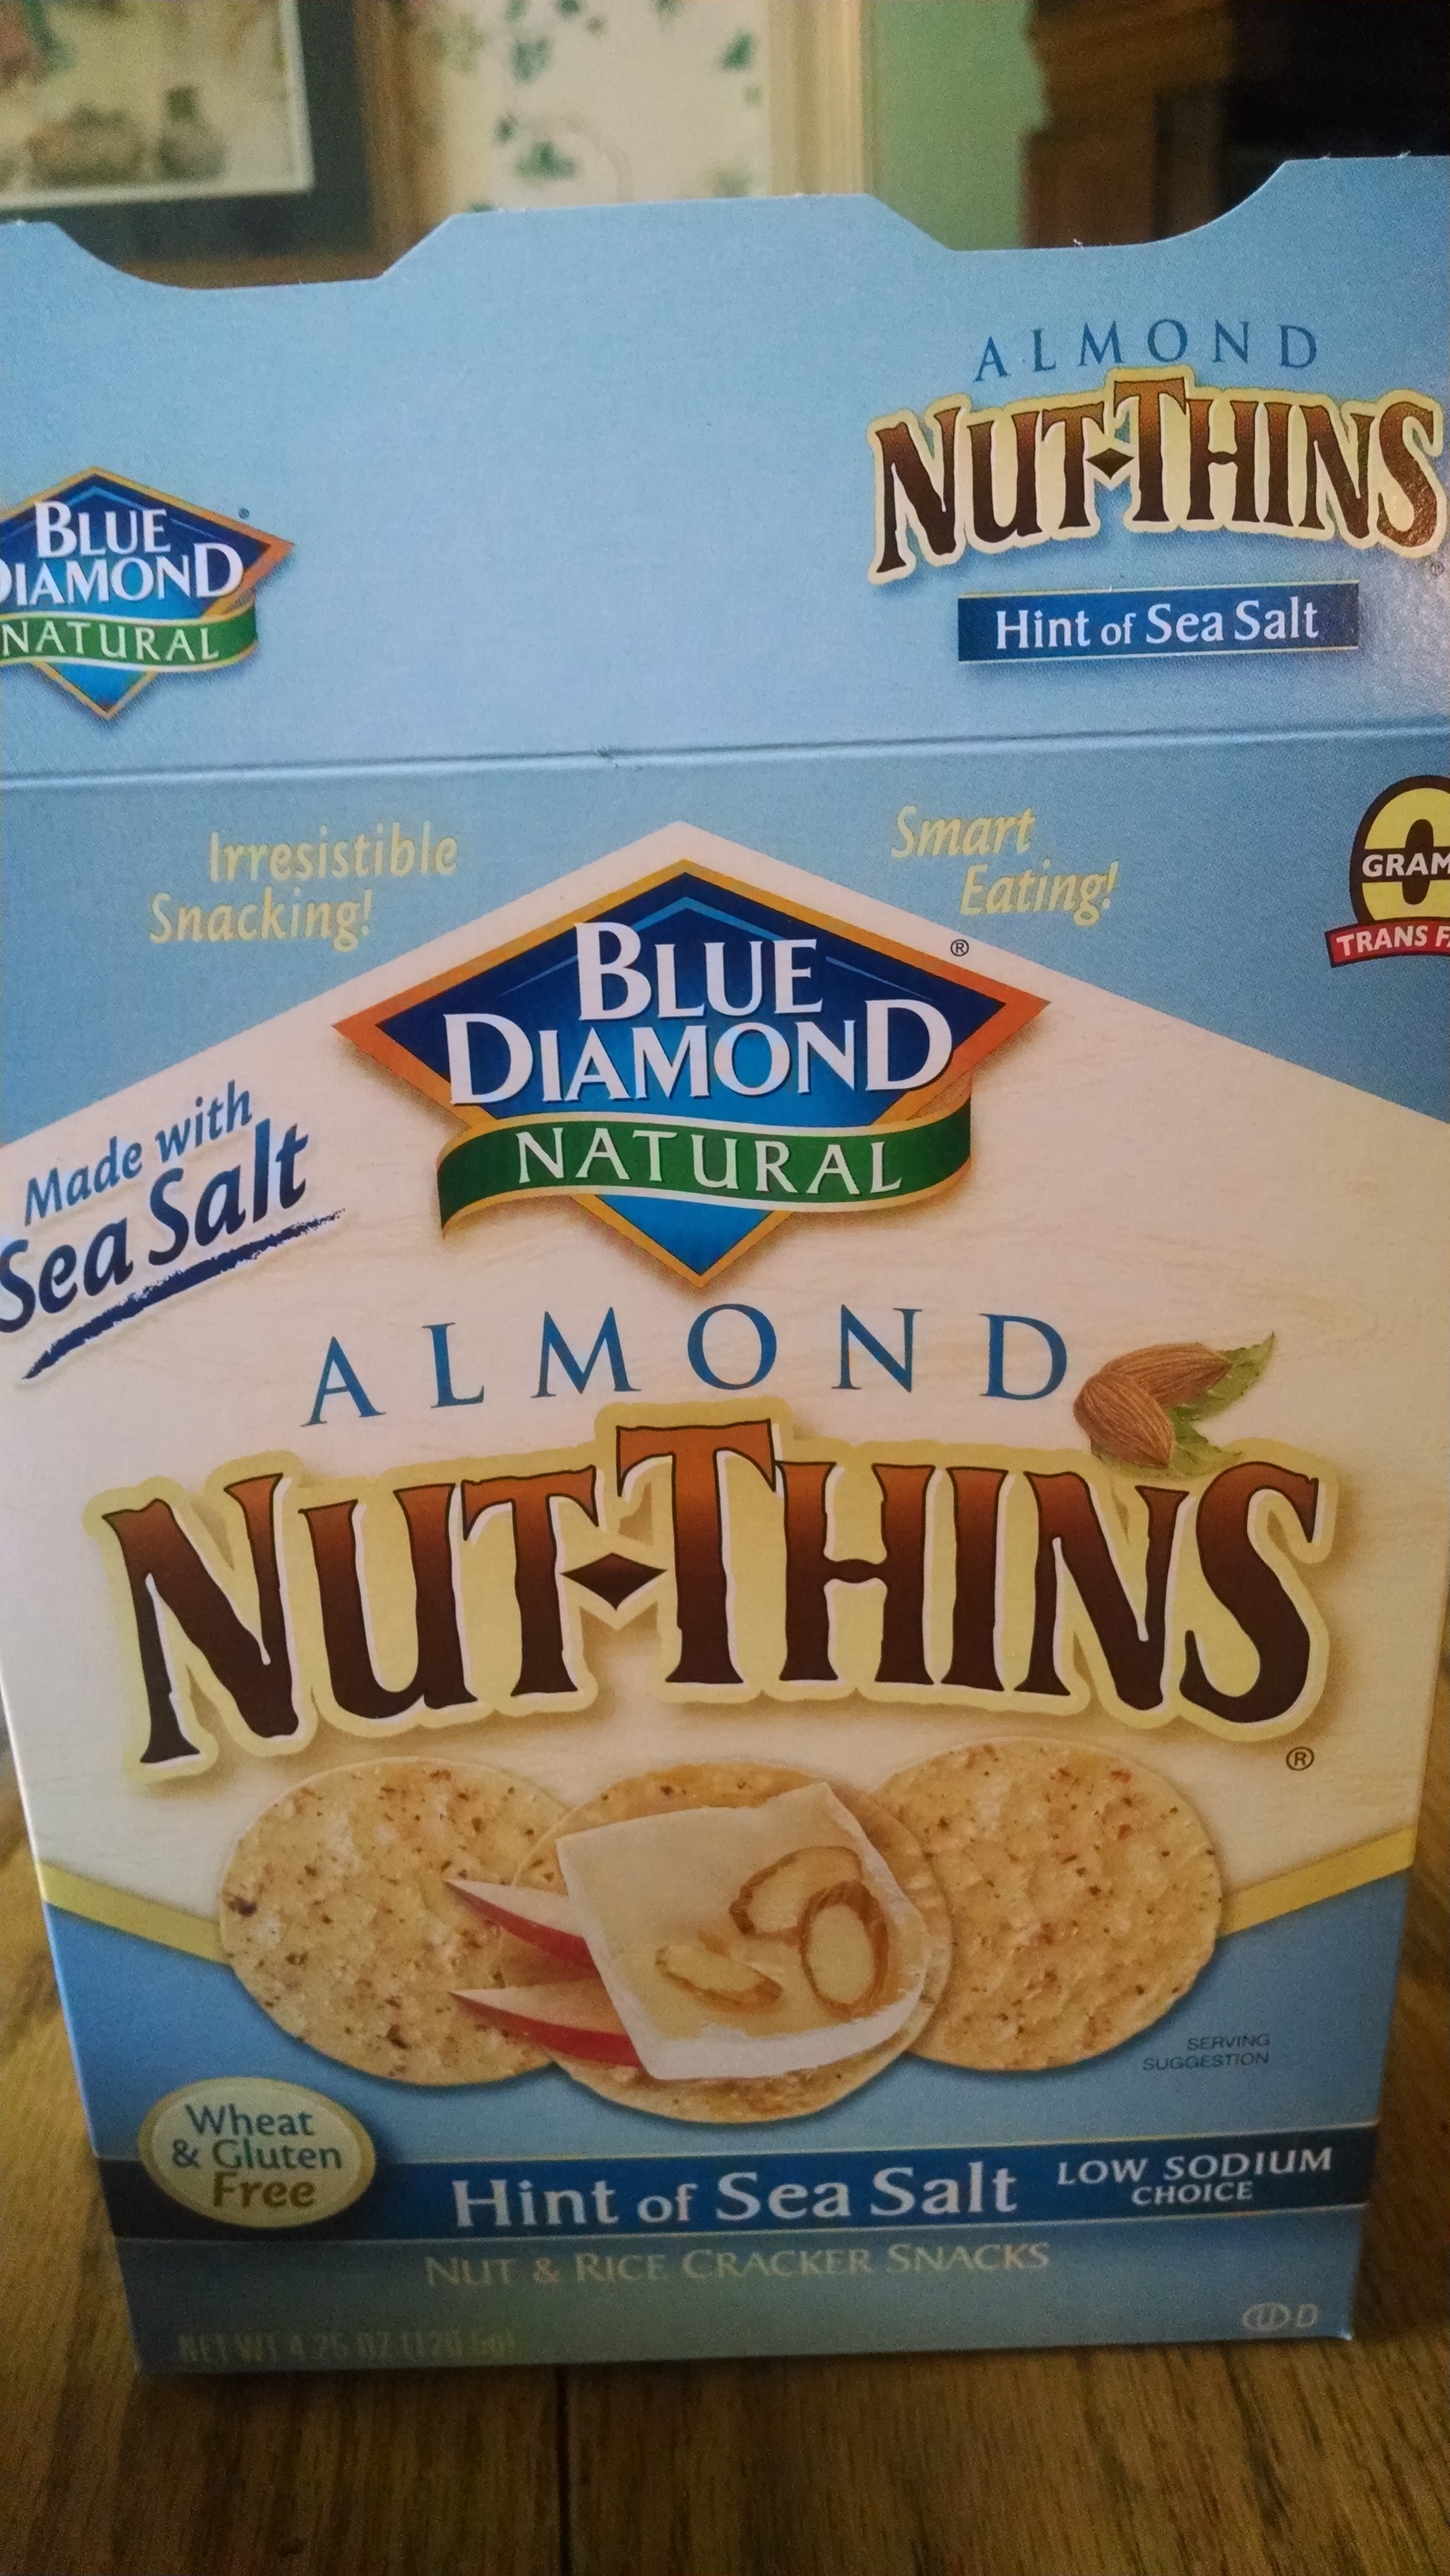 Almond nut-thins - Product